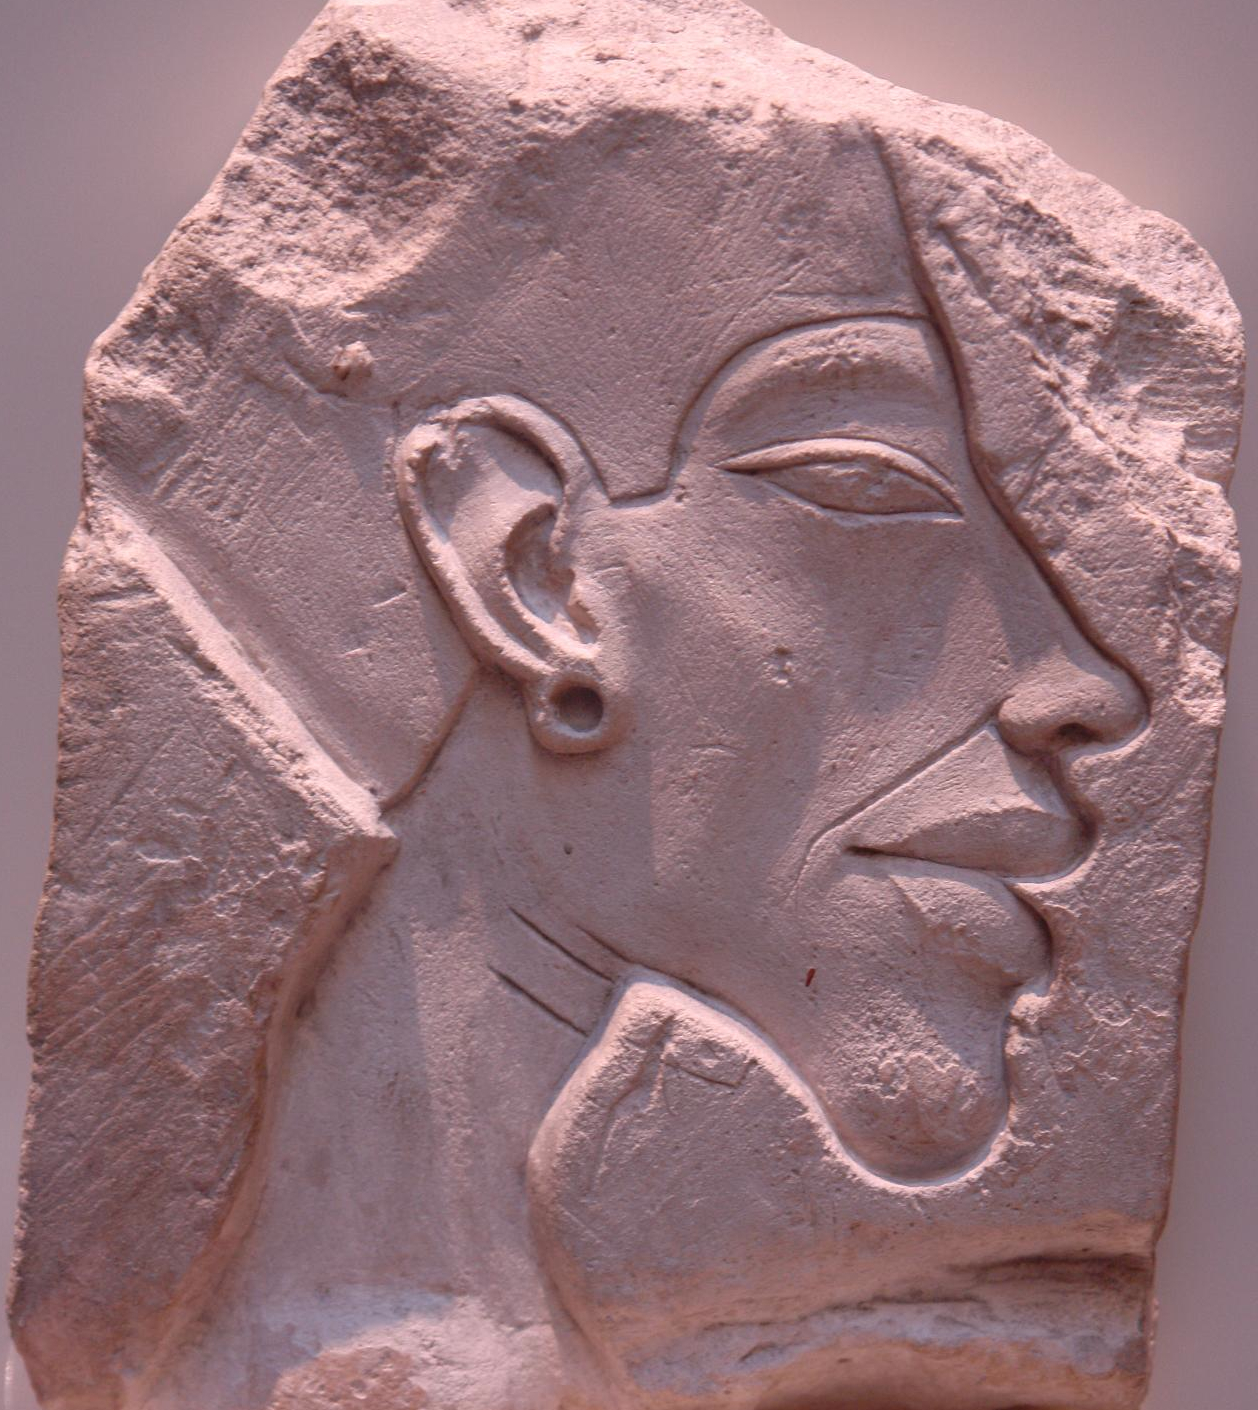 akhenaten biography essay Nefertiti - biography essay database with free papers will provide you with original and but after the 14th year of akhenaten's rule, nefertiti disappears.